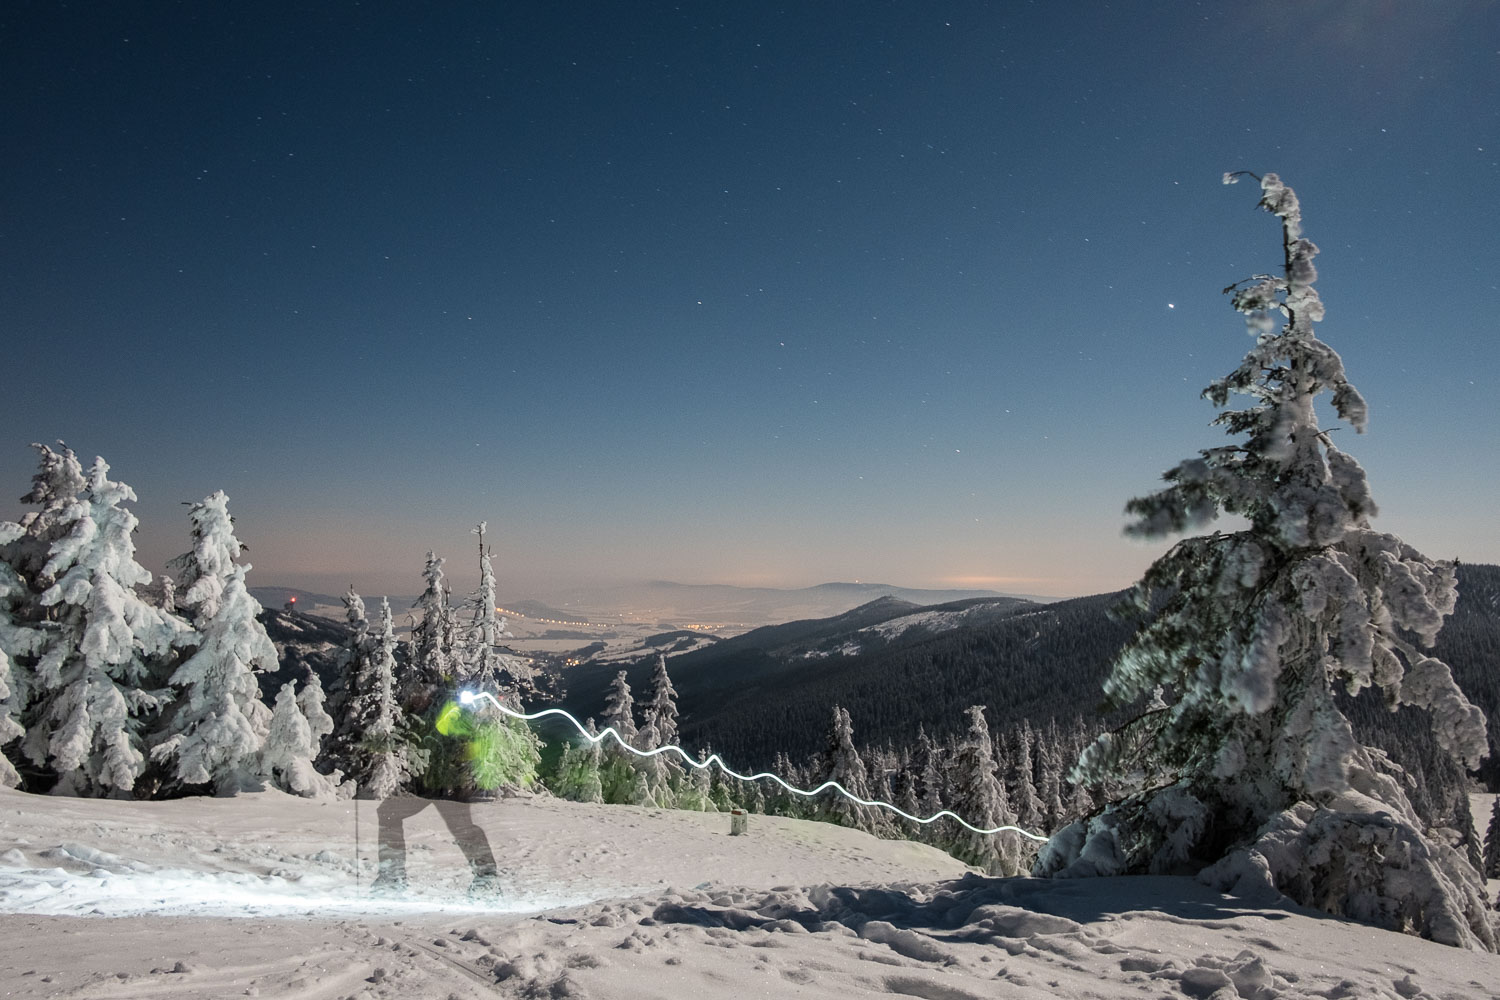 Skiing and Sports Photography by Tomek Gola - Gola.PRO